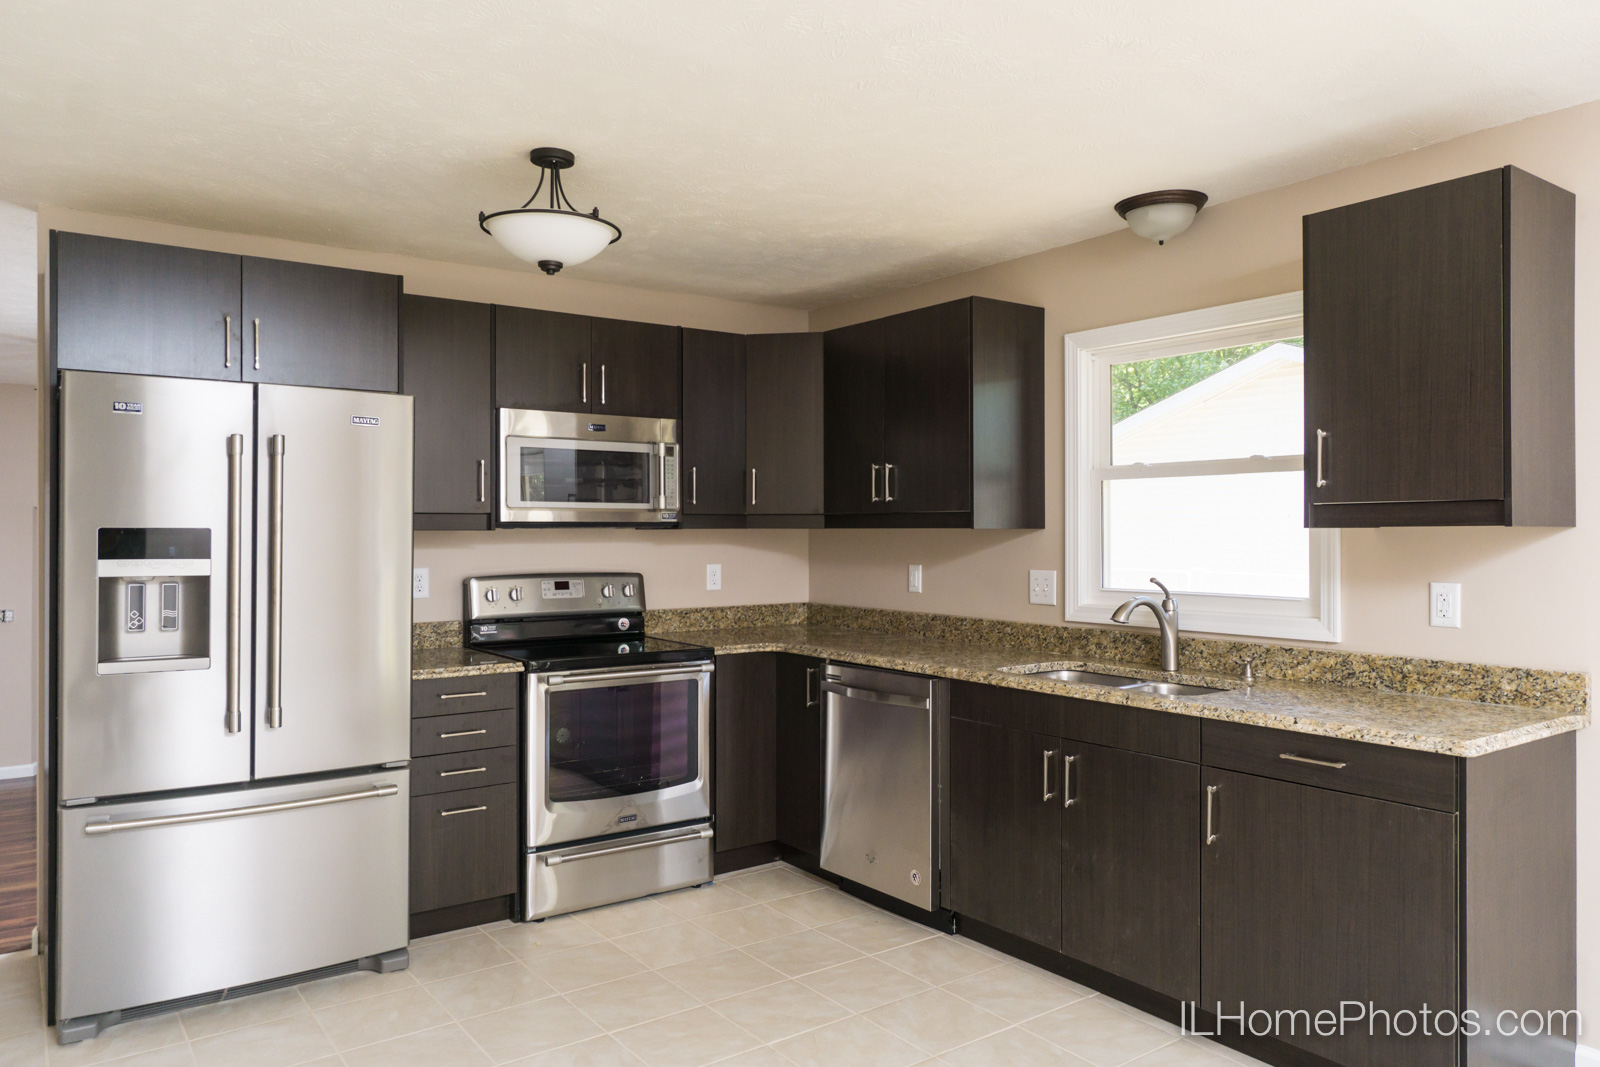 Interior kitchen photograph for real estate in Springfield :: Illinois Home Photography by Michael Gowin, Lincoln, IL